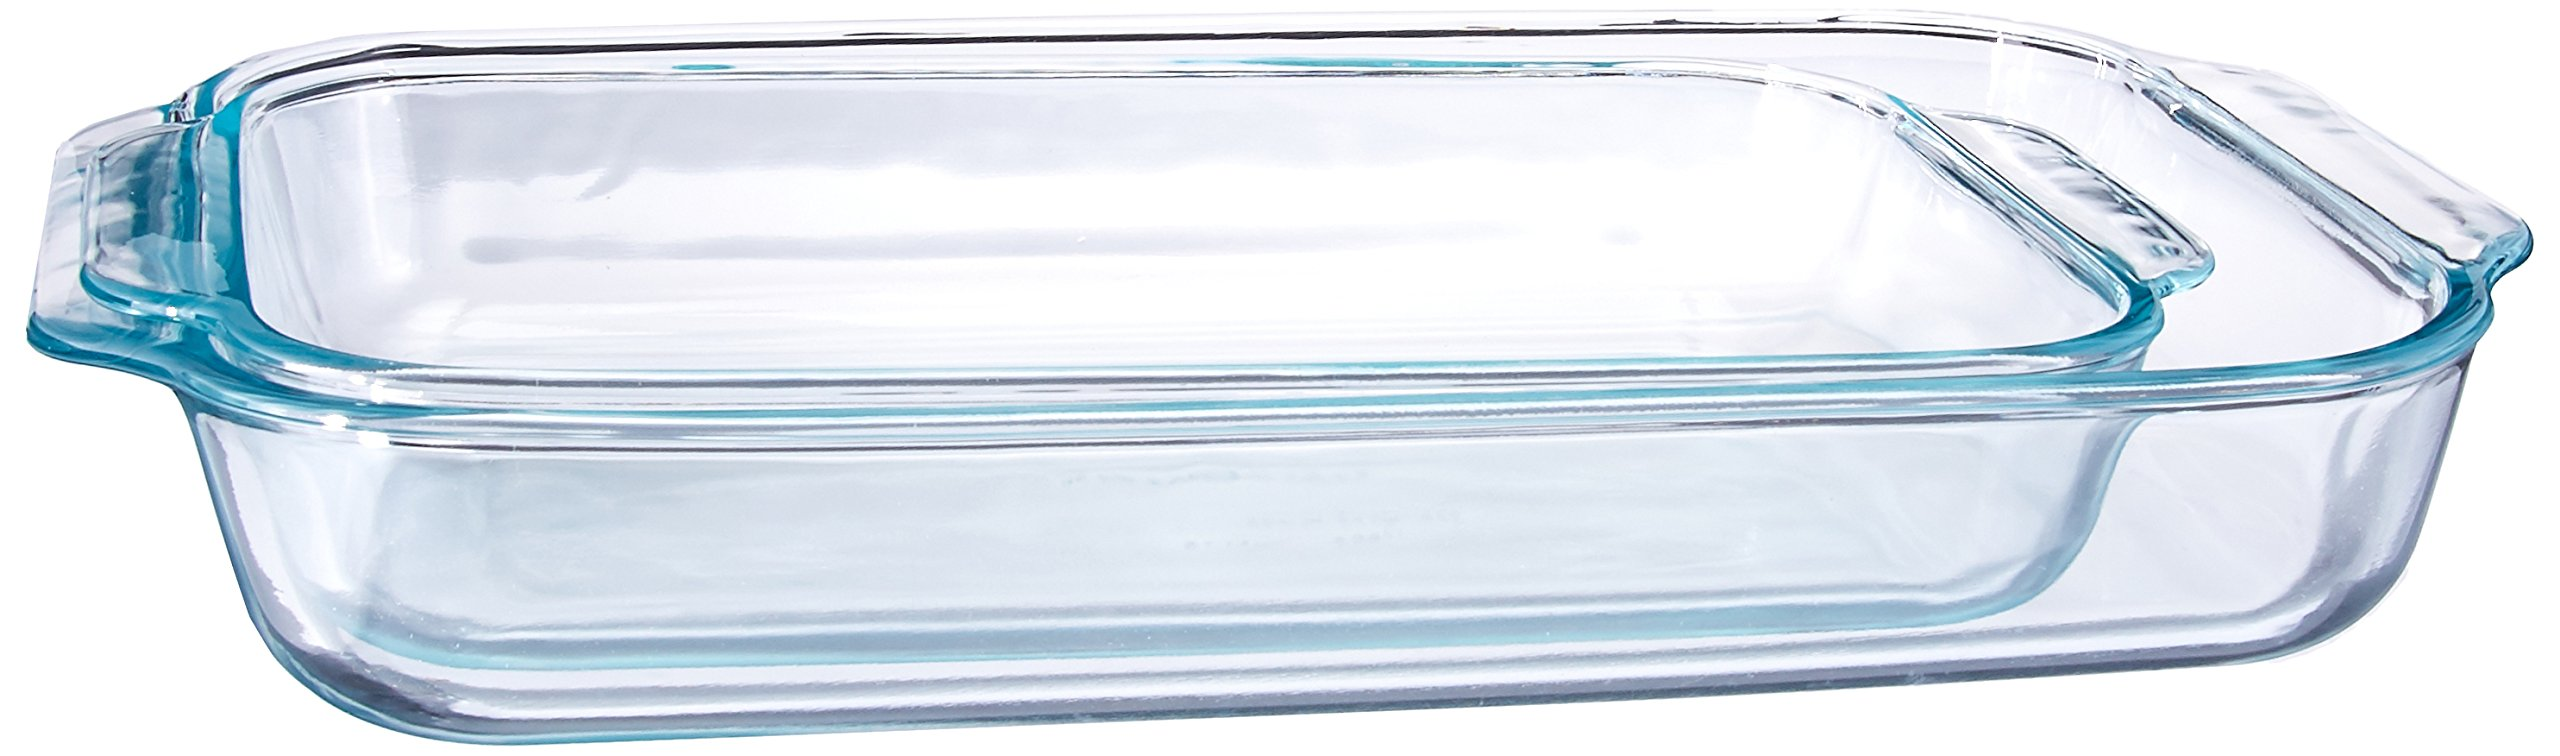 Pyrex 1107101 Basics Clear Oblong Glass Baking Dishes, 2 Piece Value Plus Pack Set by Pyrex